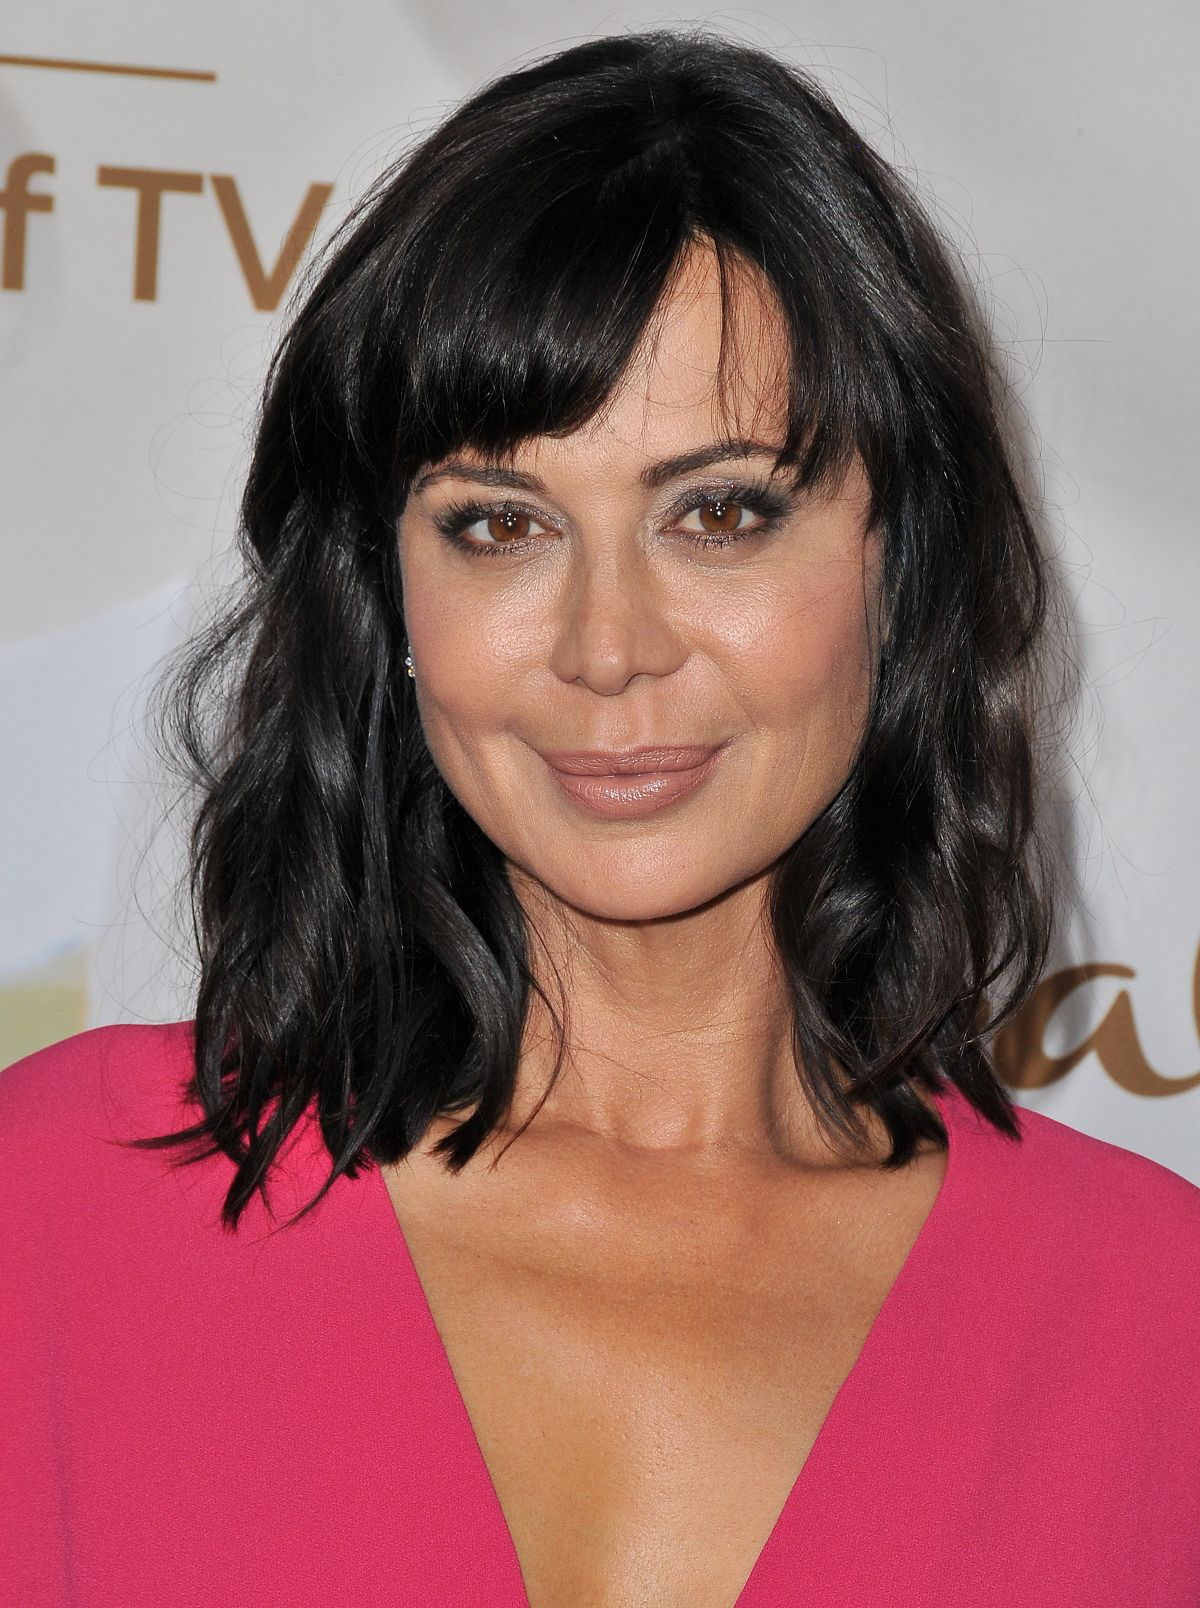 CATHERINE BELL at Hallmark Event at TCA Summer Tour in Los Angeles 07/27/2017